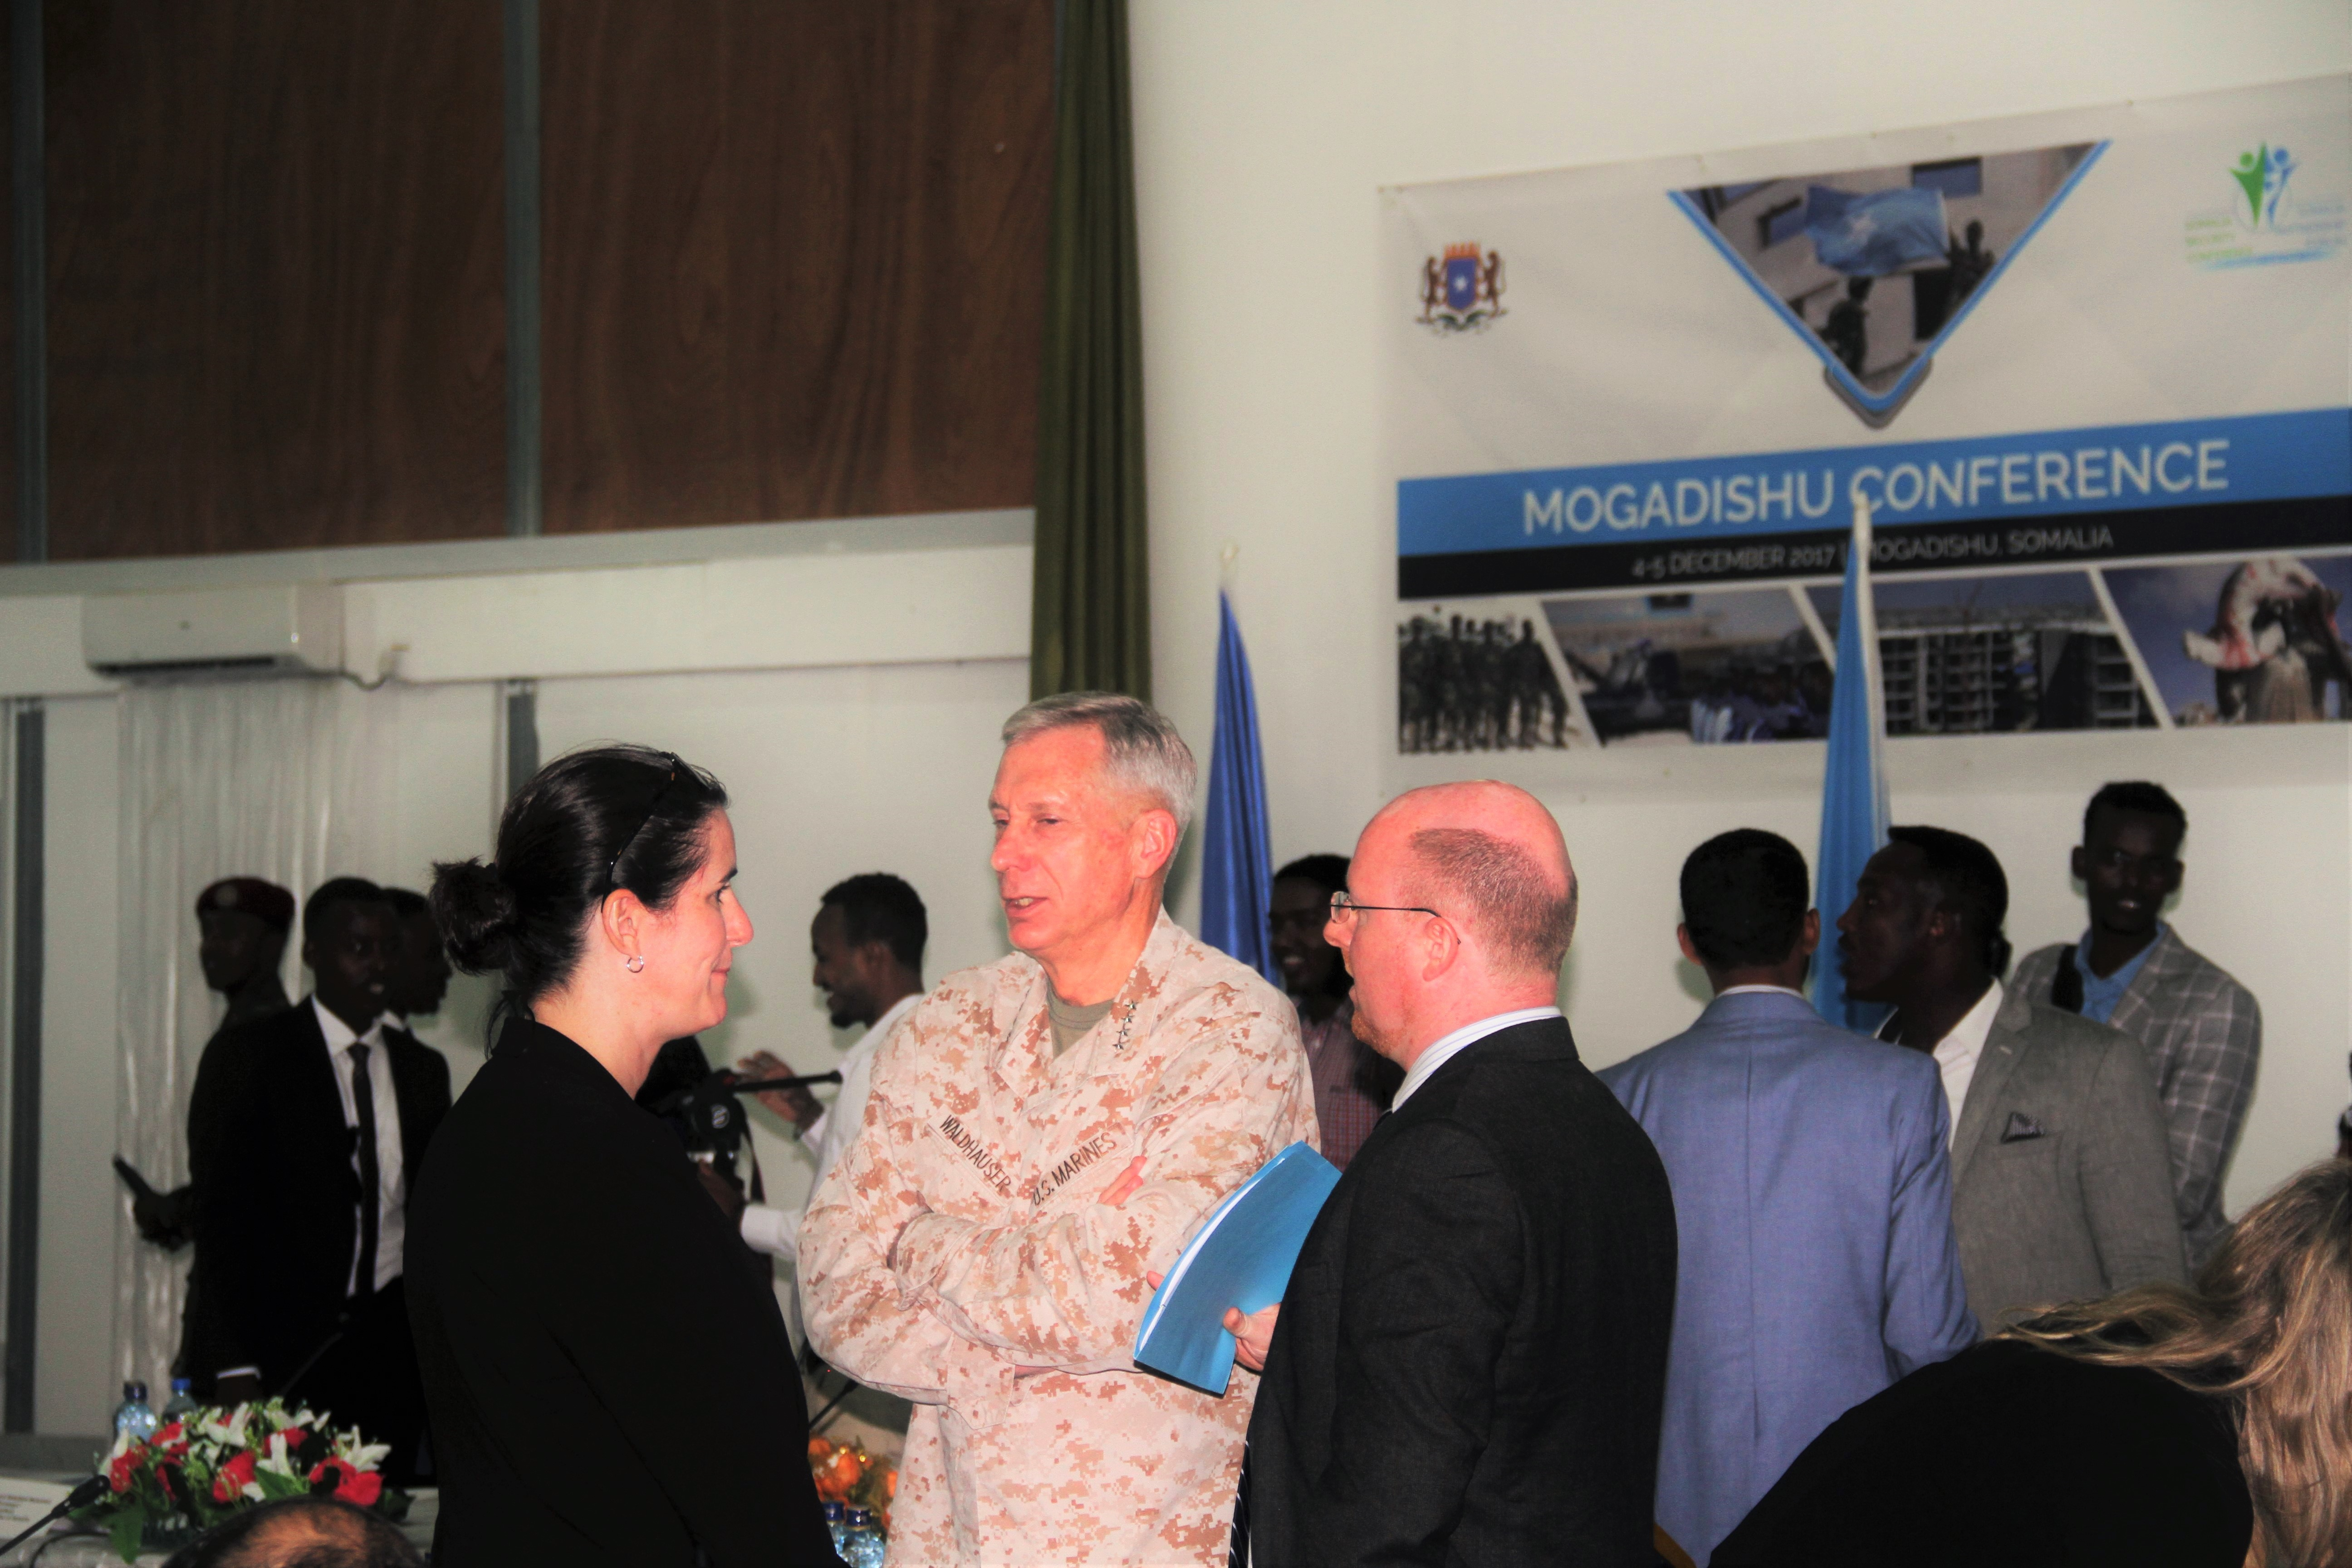 U.S. Marine Corps Gen. Thomas D. Waldhauser, Commander, U.S. Africa Command, speaks to other conference attendees during a break at the Somalia Security Conference held in Mogadishu on December 4, 2017. (Courtesy photo)